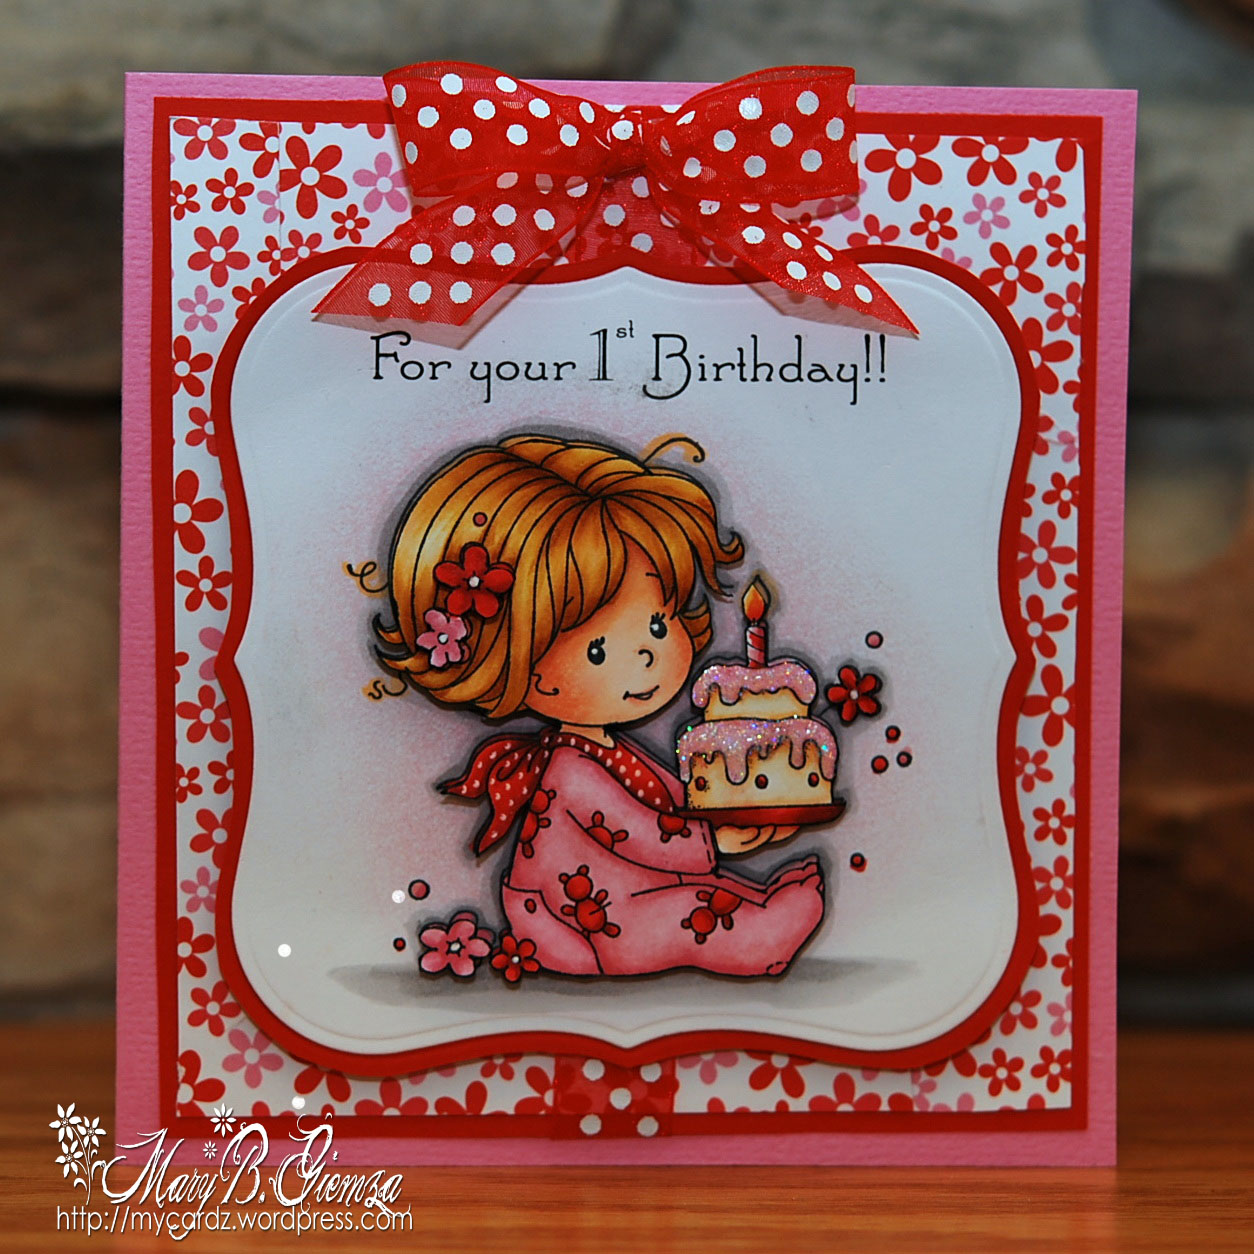 Happy 1st birthday card magnolia licious 1st wee wednesday my birthday baby girl image dsc8109a bookmarktalkfo Images